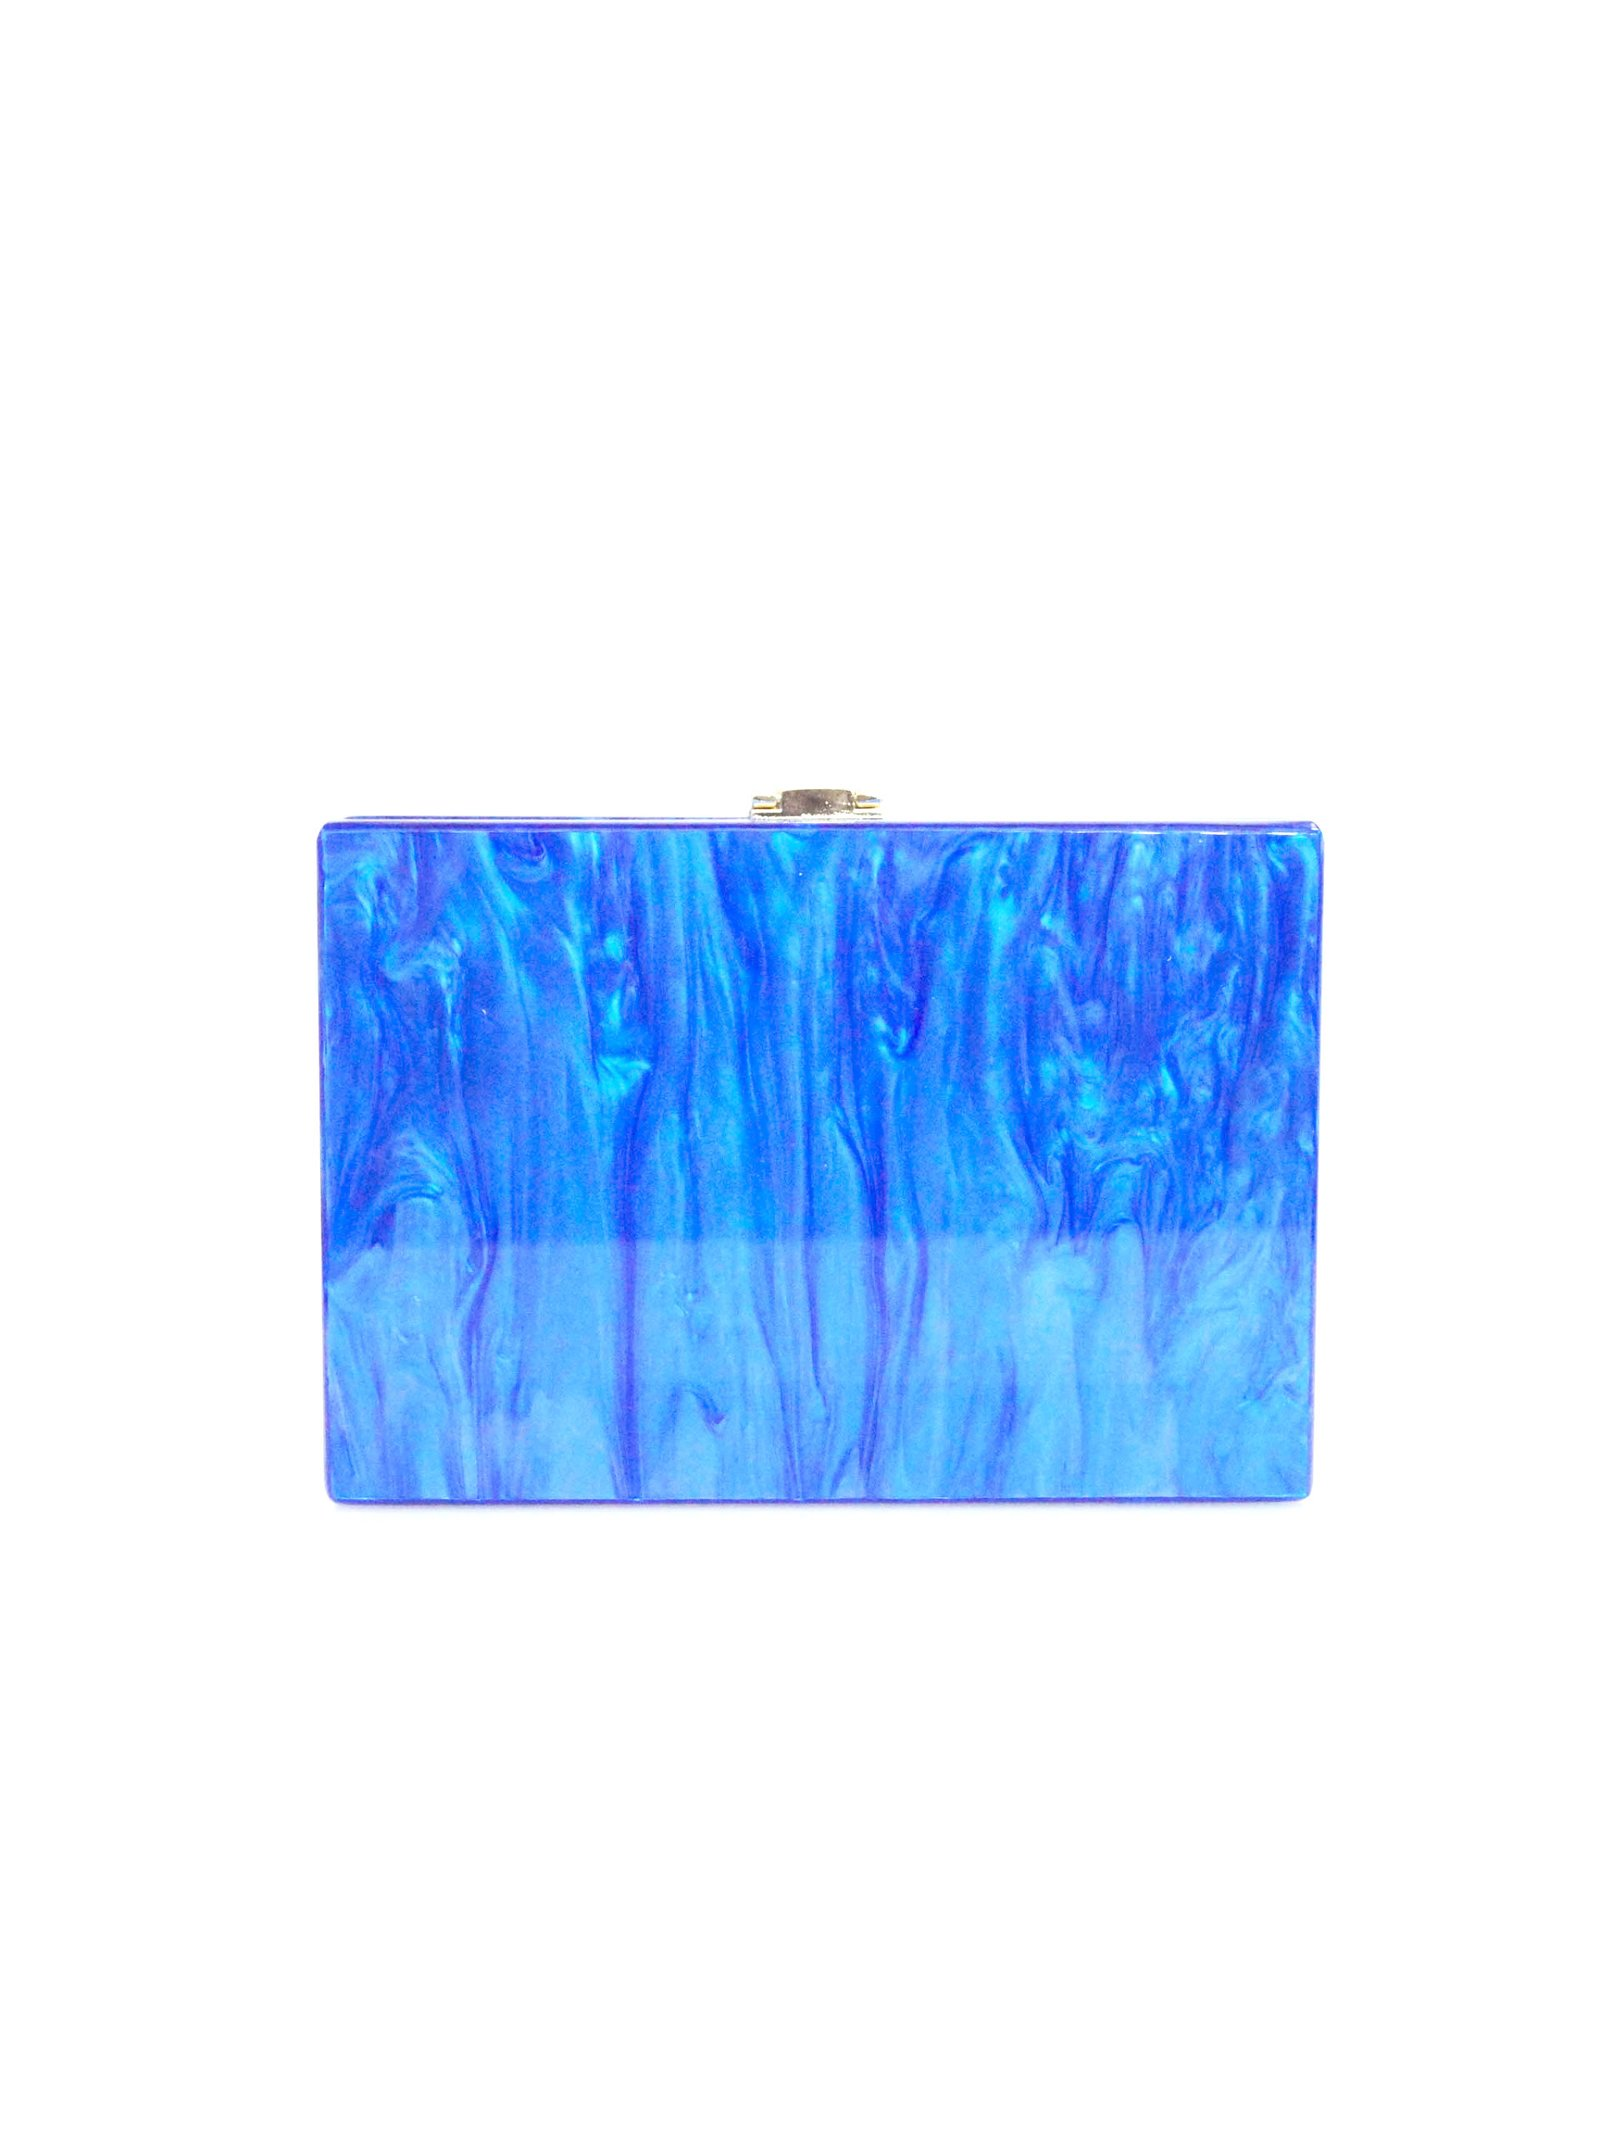 Milanblocks Sea Creature Blue Acrylic Box Clutch